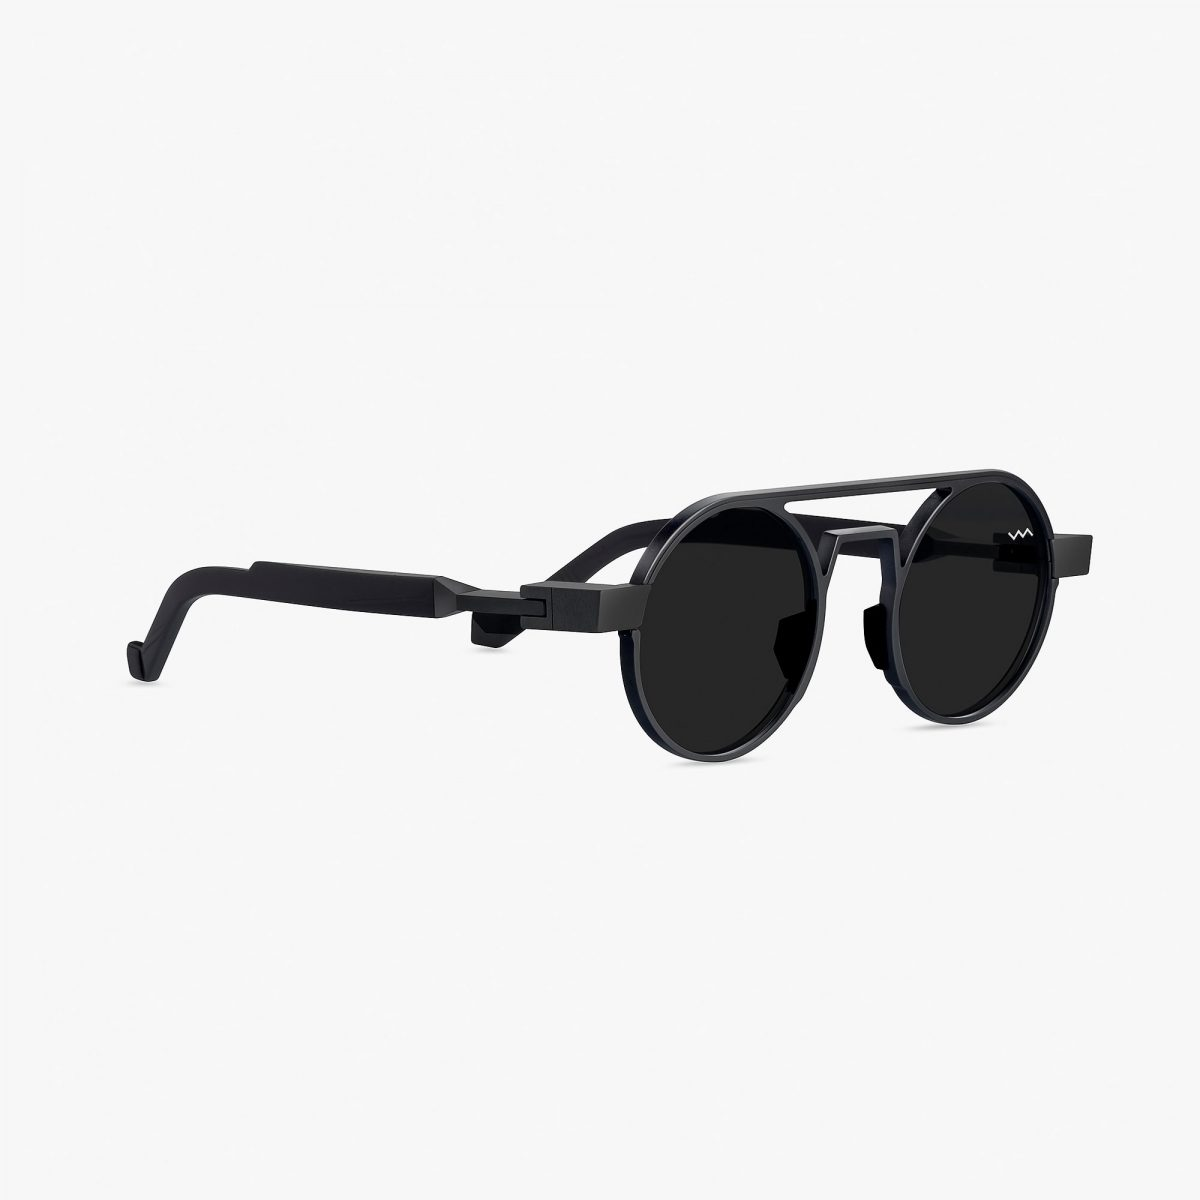 VAVA EYEWEAR ONLINE SHOP WL0019 SUNGLASS BLACK SIDE